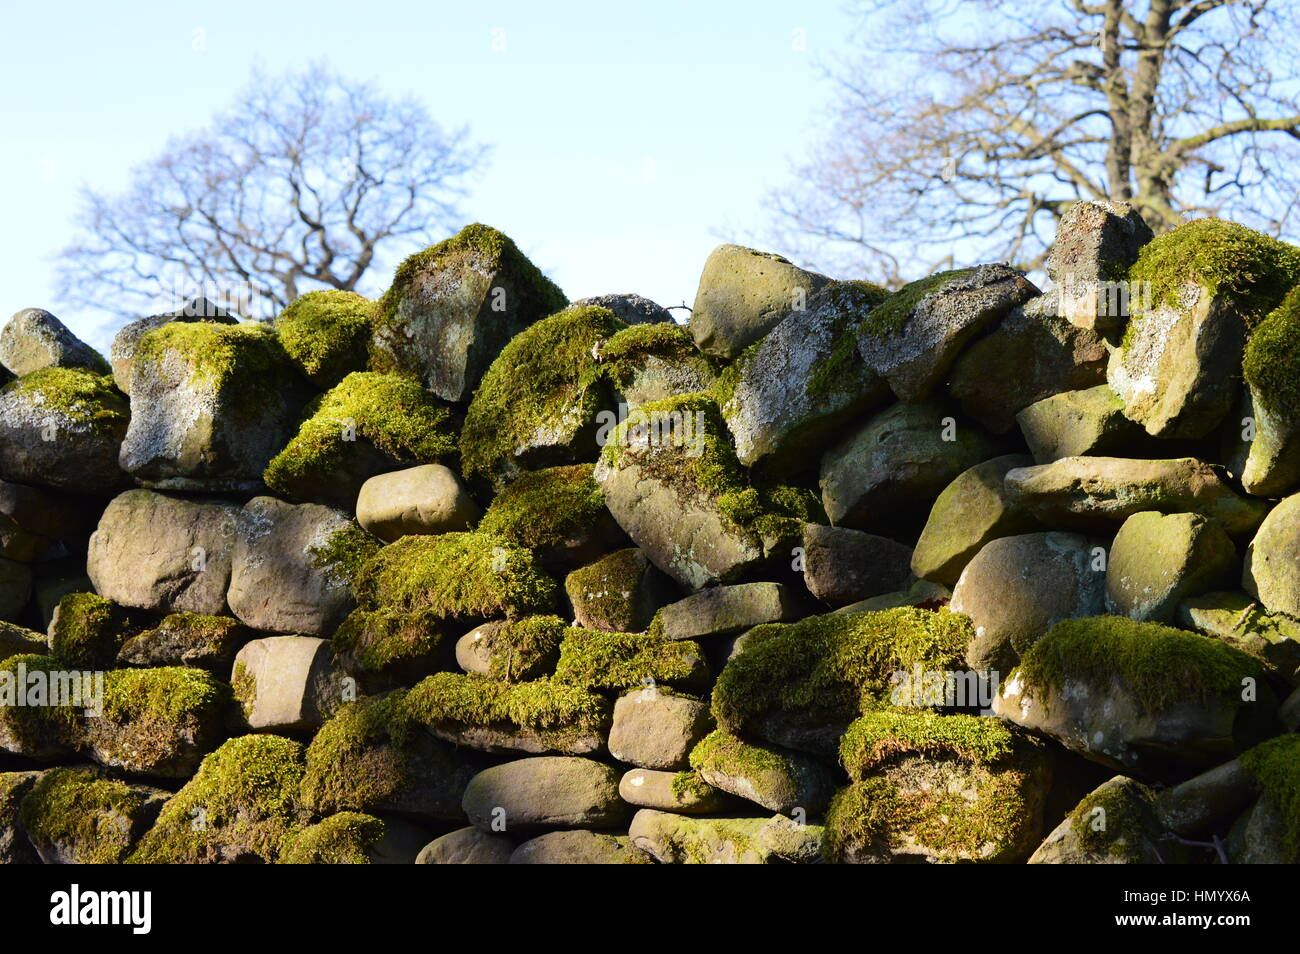 Mossy Dry Stone Wall in Wycoller, Lancashire - Stock Image